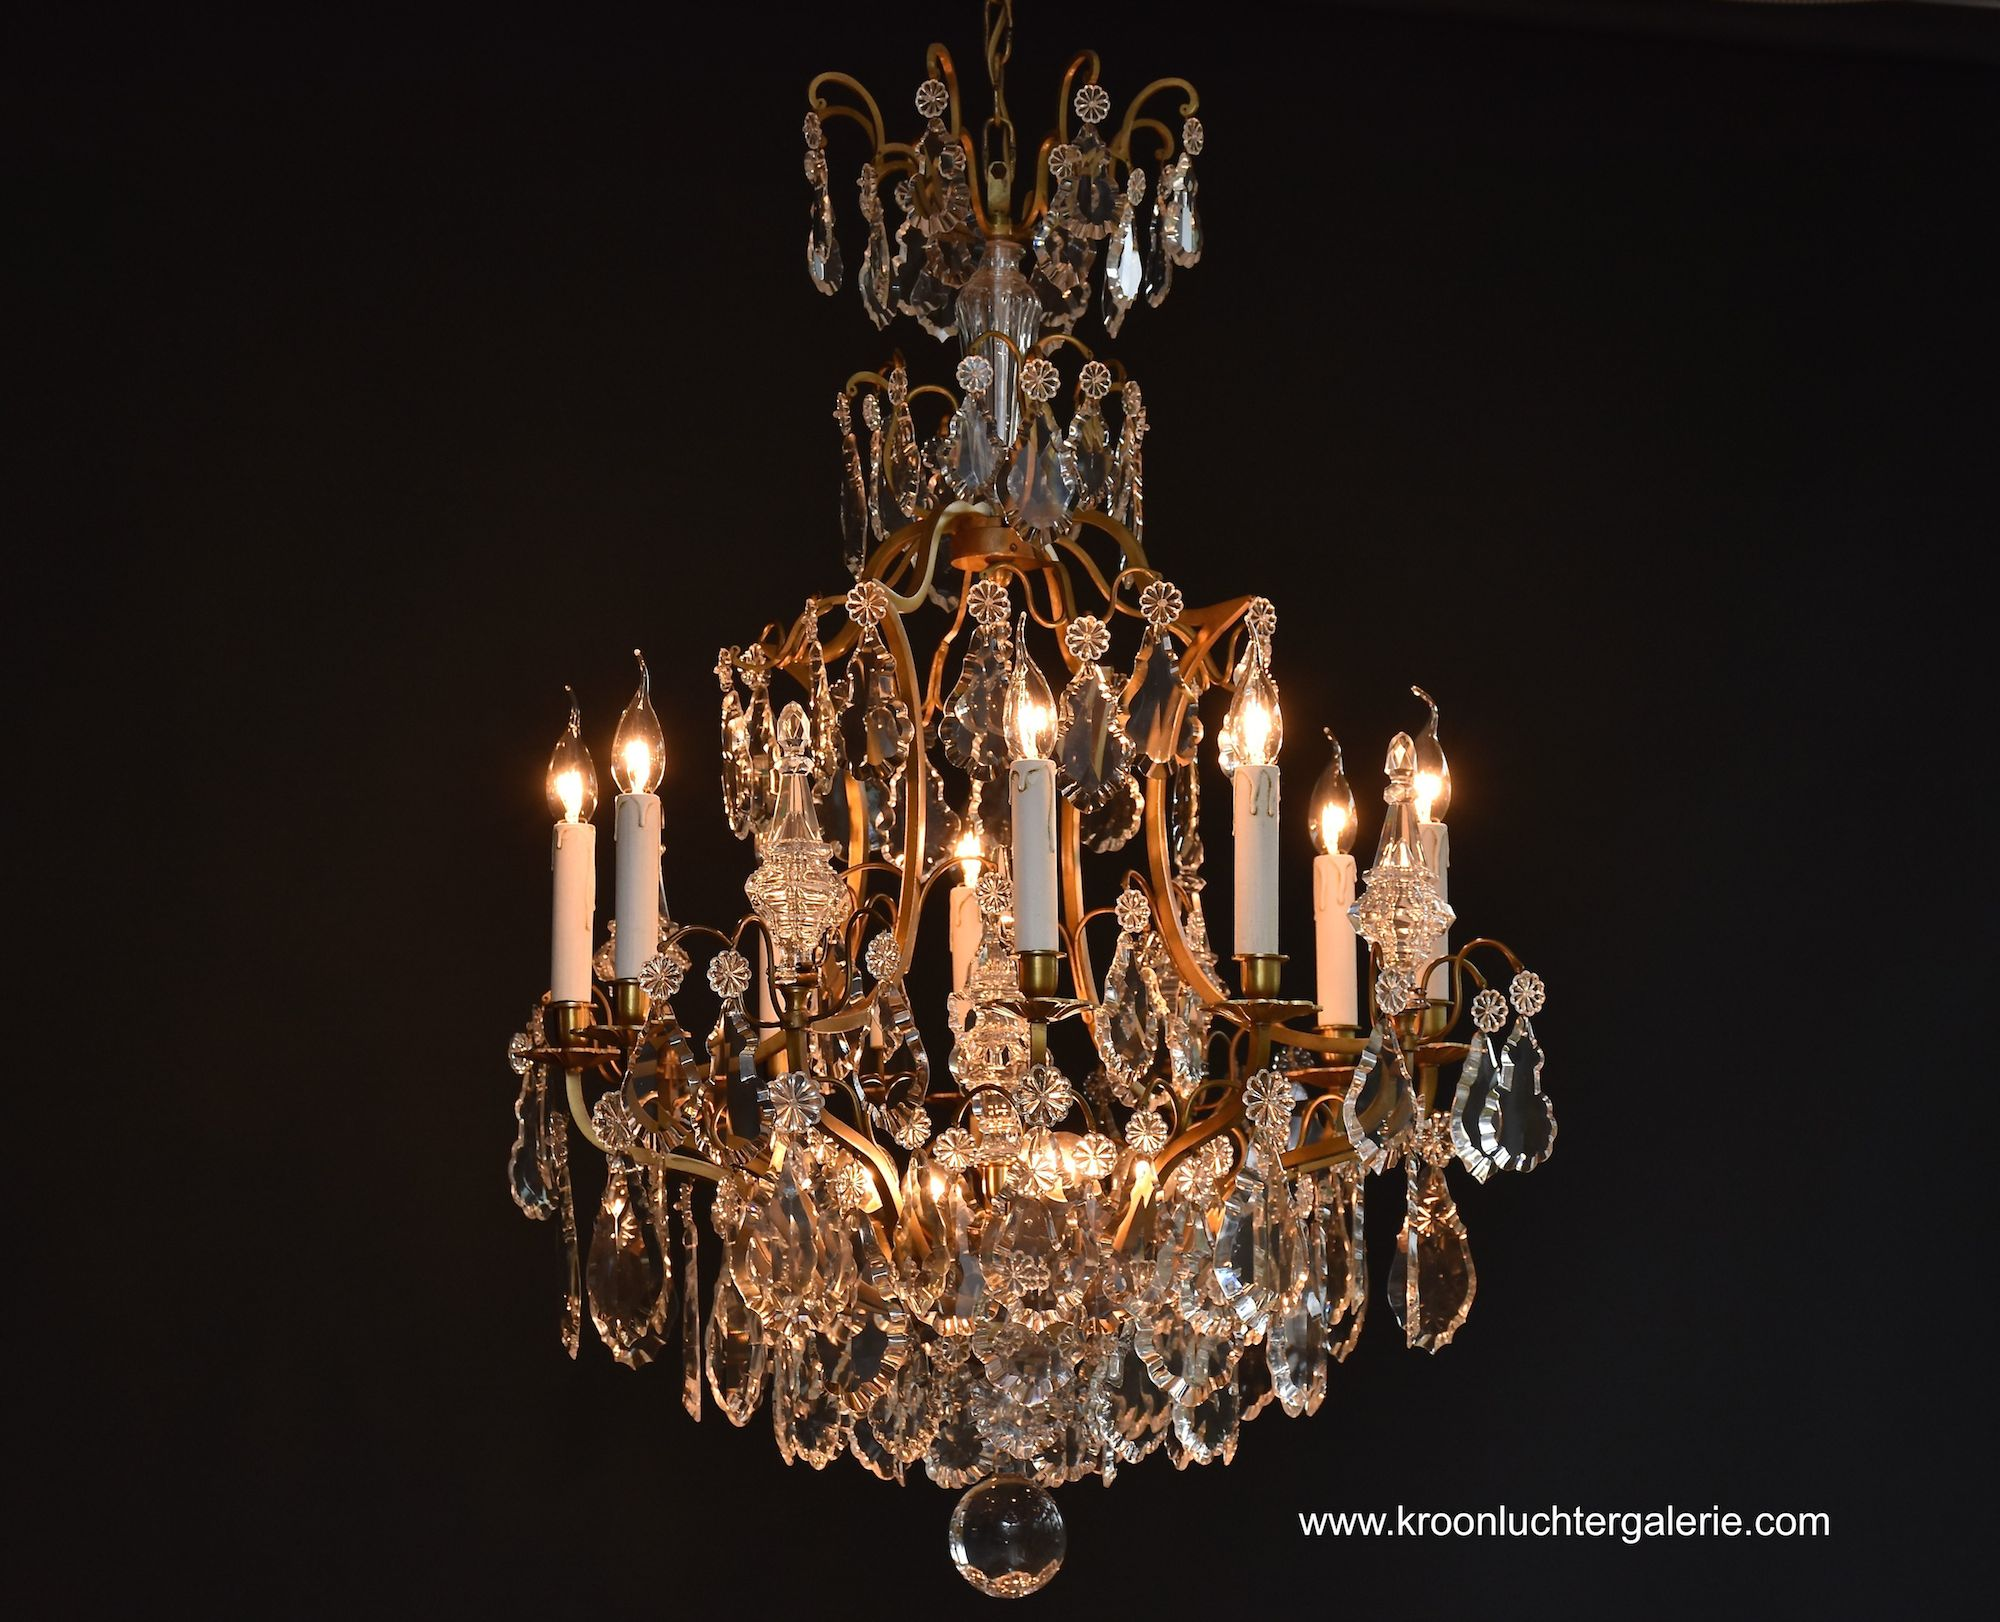 French chandelier with 12 light, Ref. 605